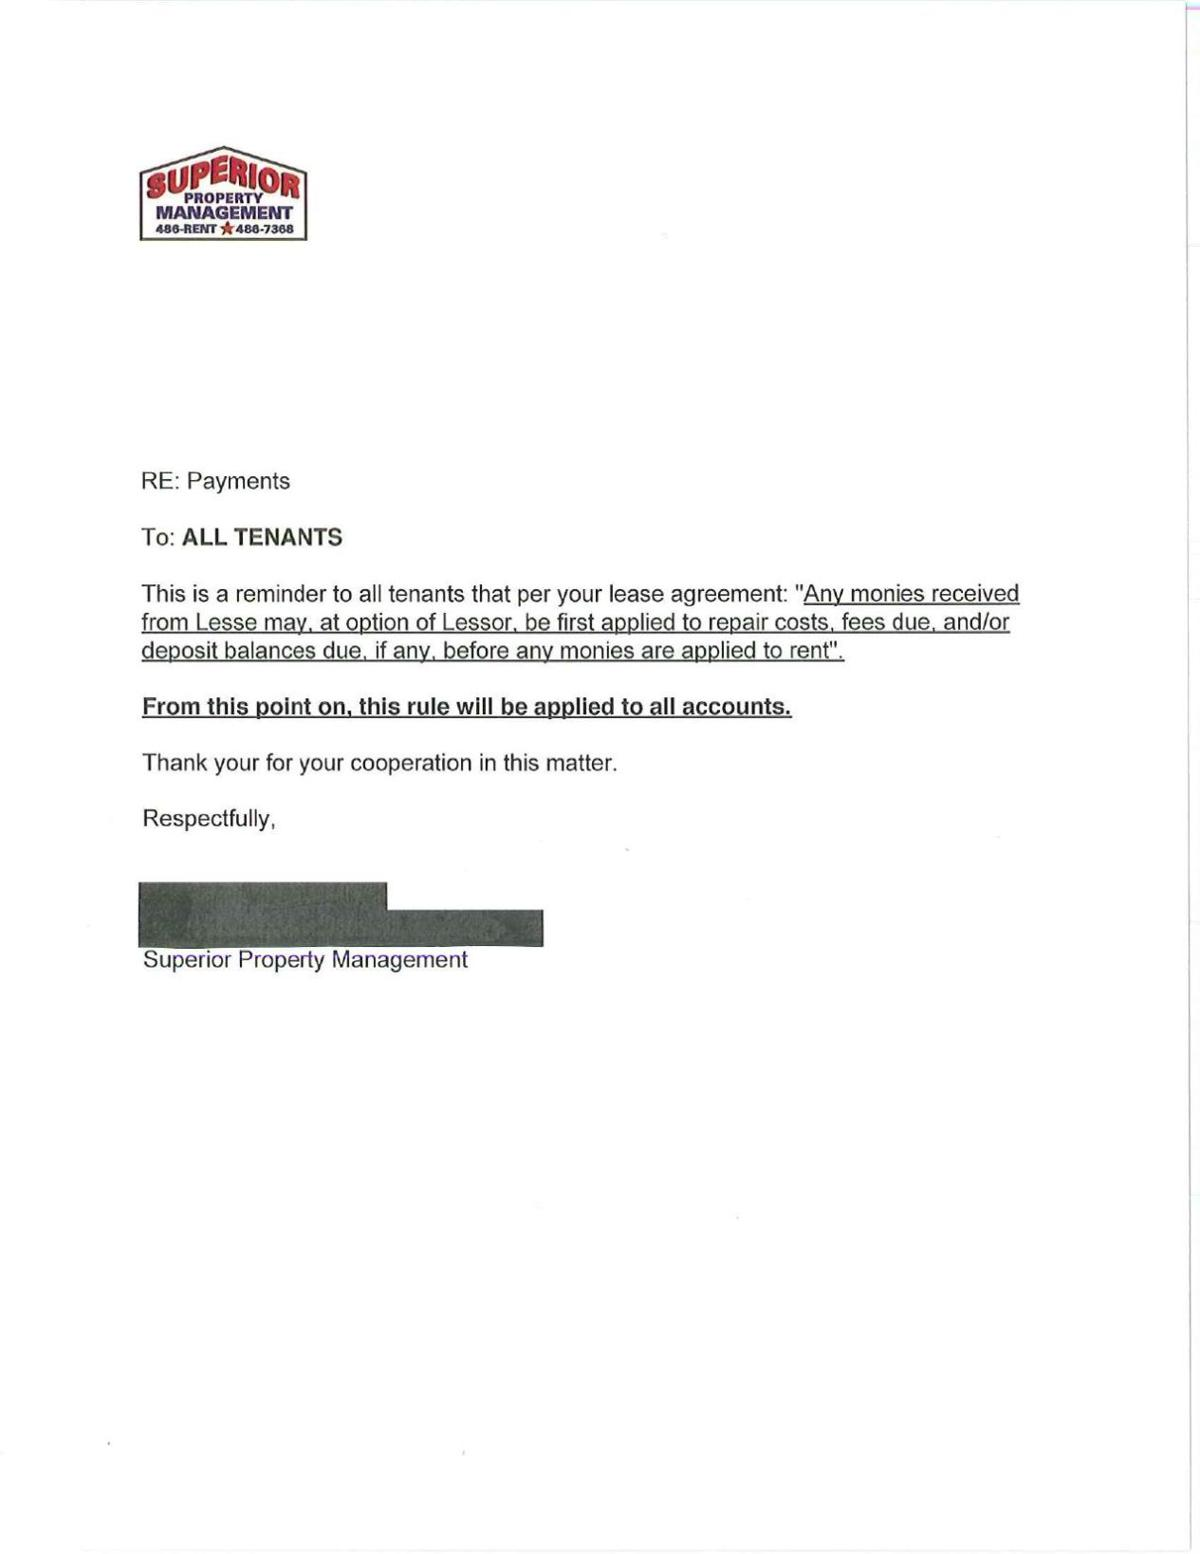 Letter from Superior 2